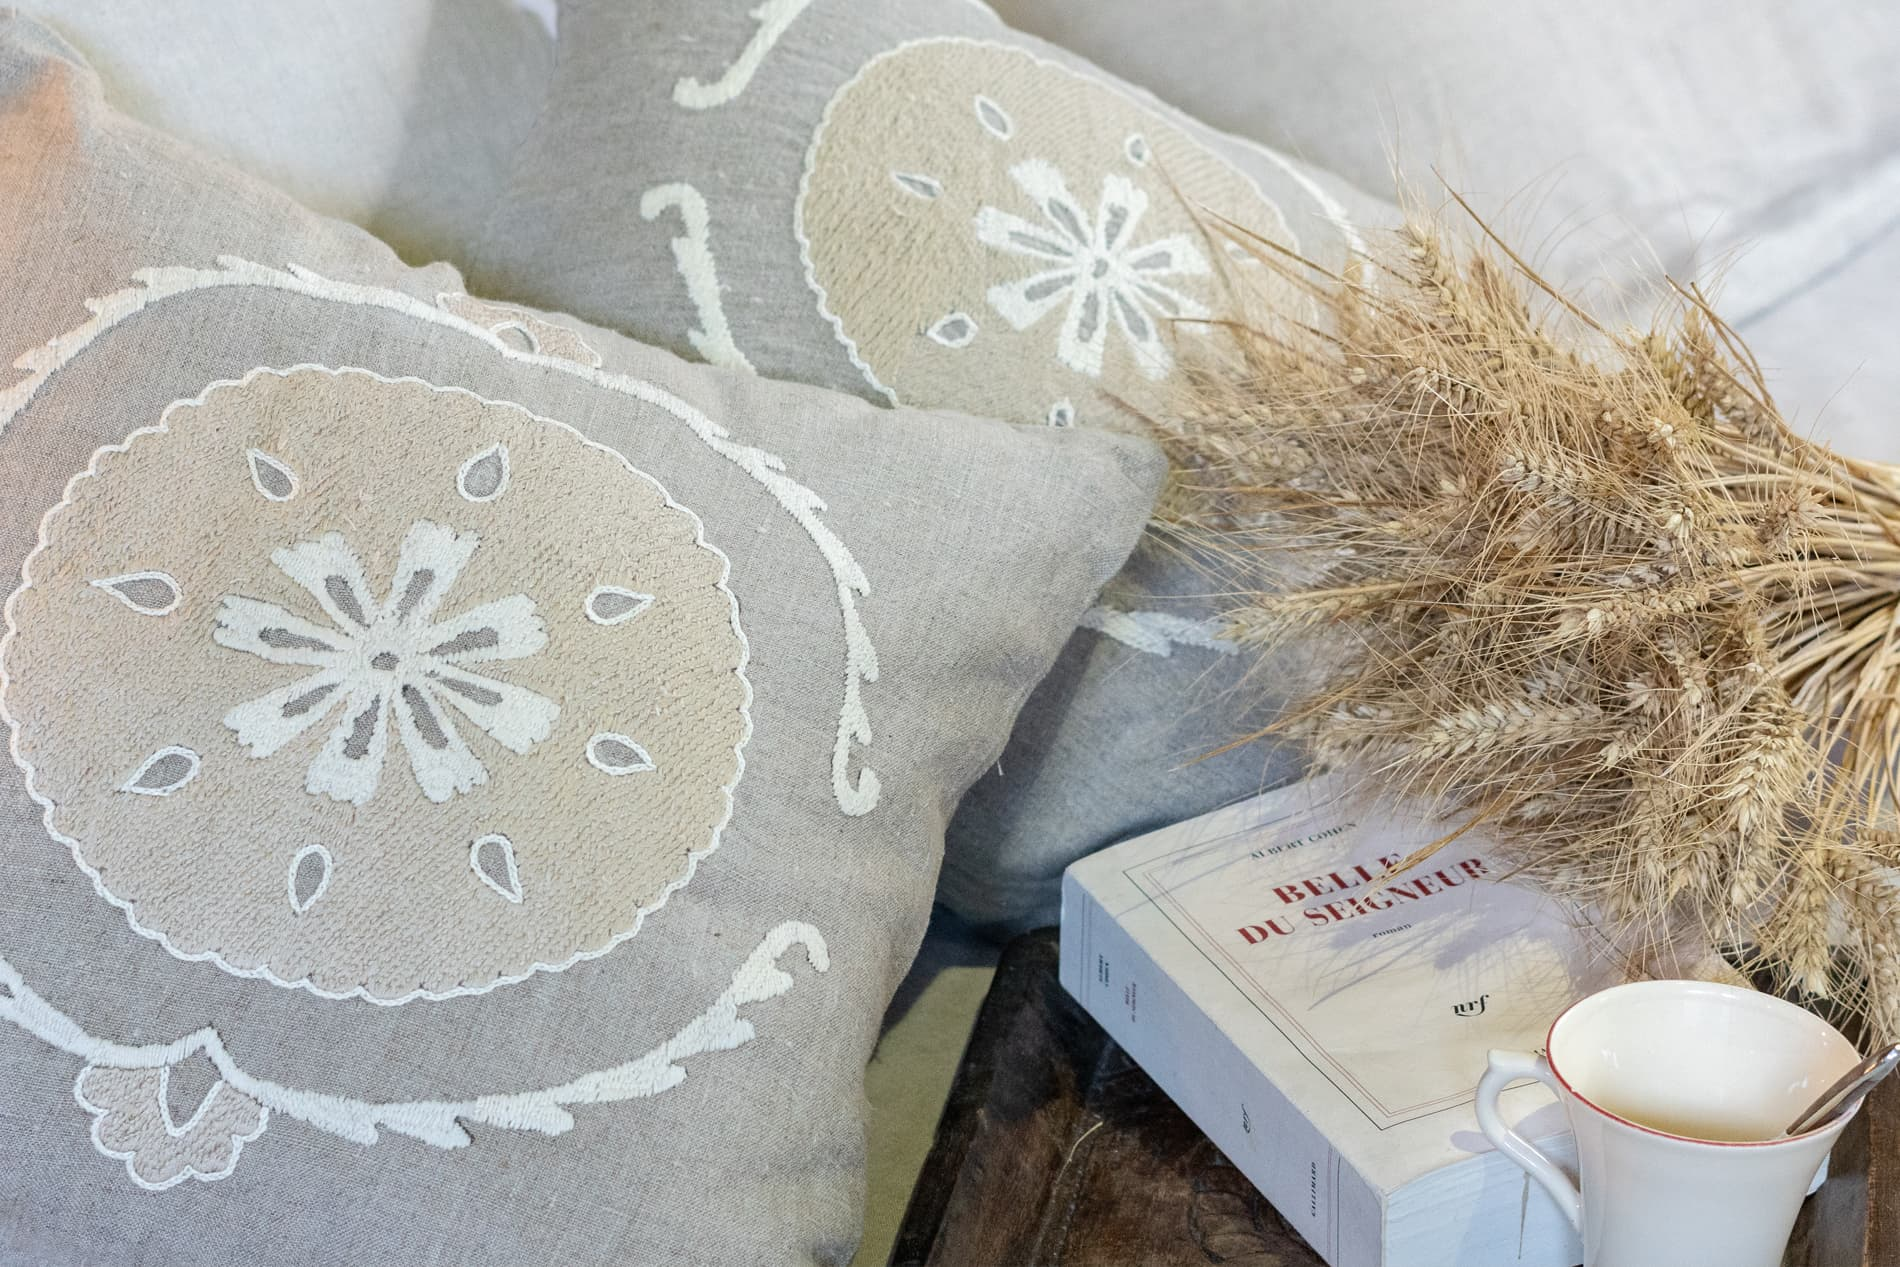 Coussin brodé Sitora